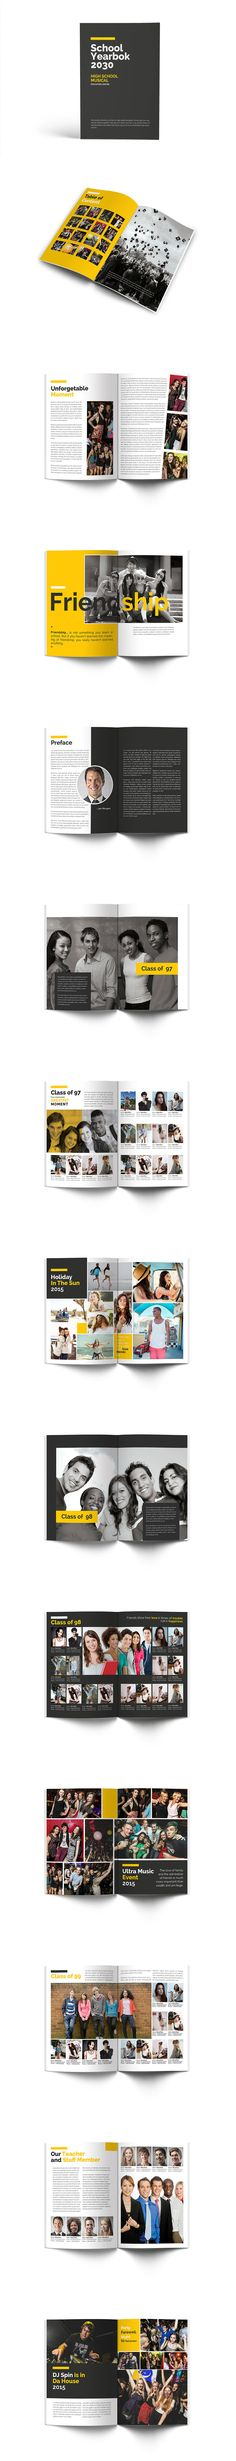 School Year Book Template InDesign INDD - 40 Pages